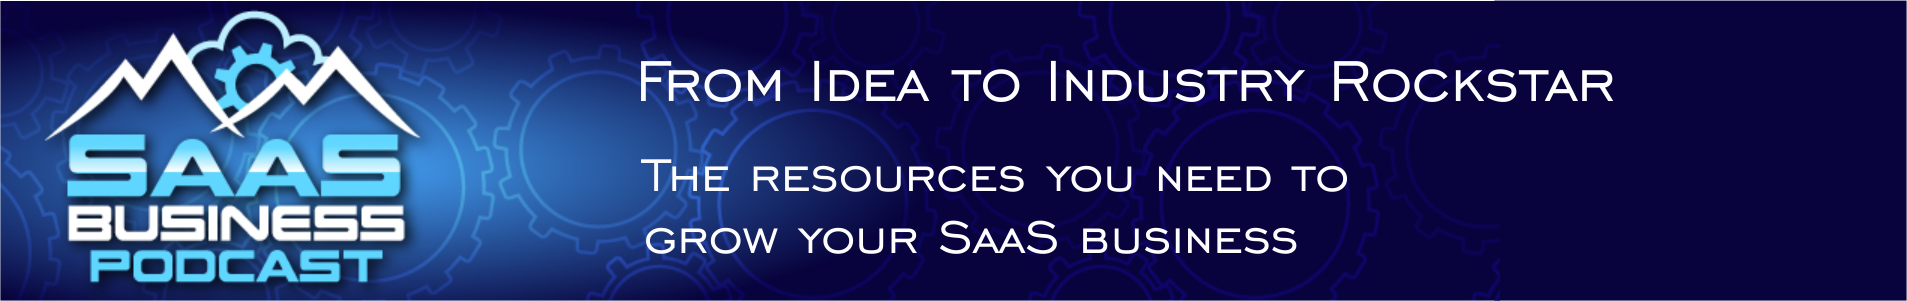 IMG SaaSBP-Banner R02 Idea-to-Industry Resources R00 0.409-MB 1907x0301